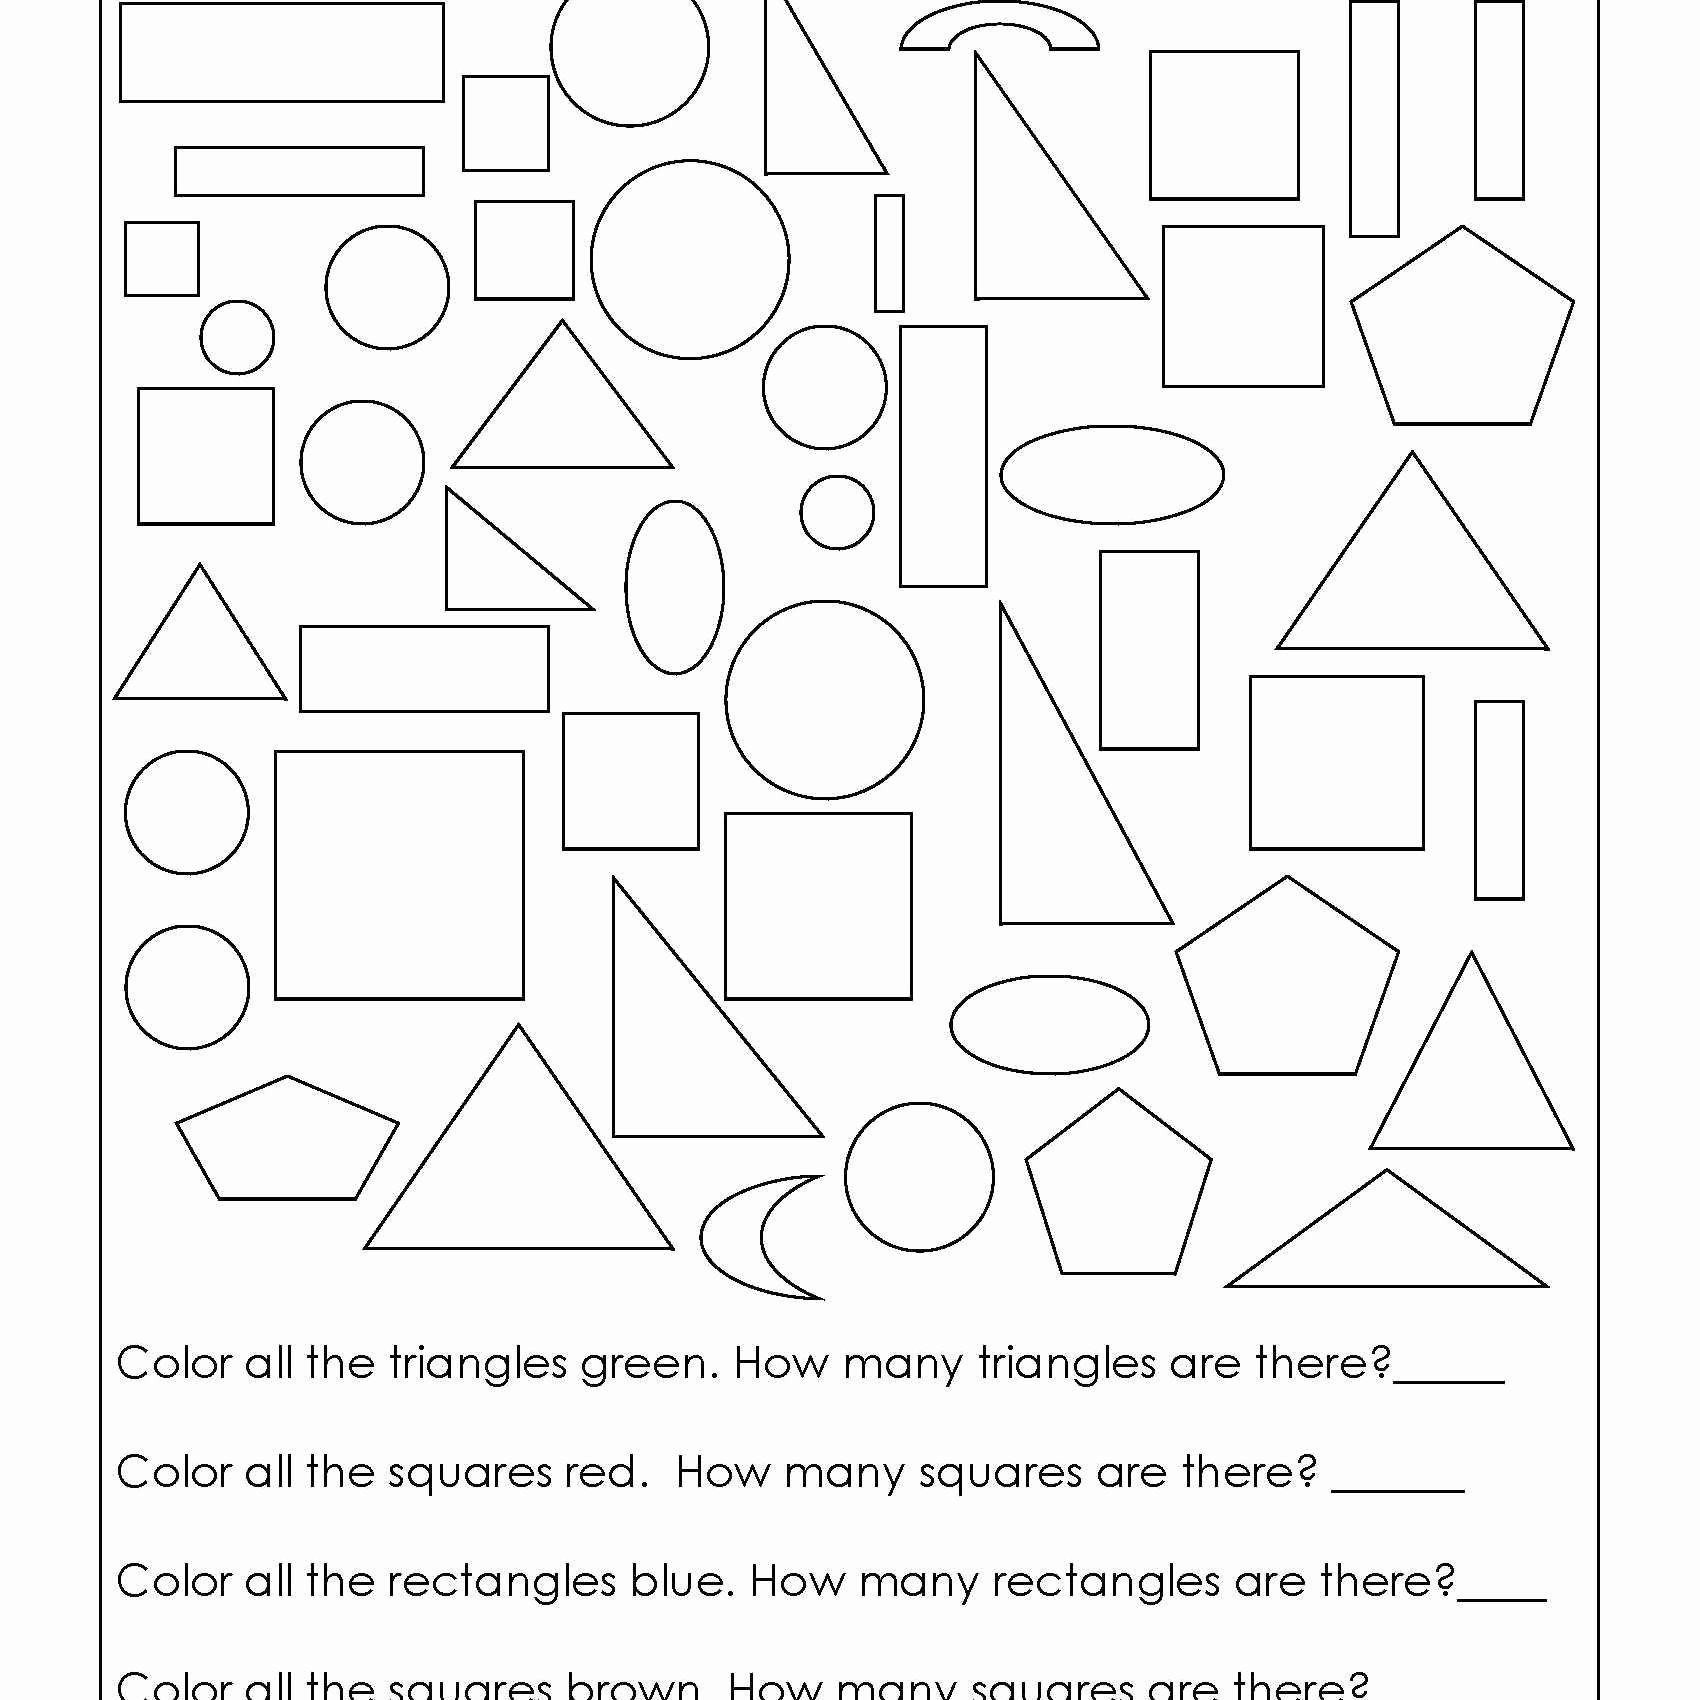 Coloring Math Activities For Preschoolers In With